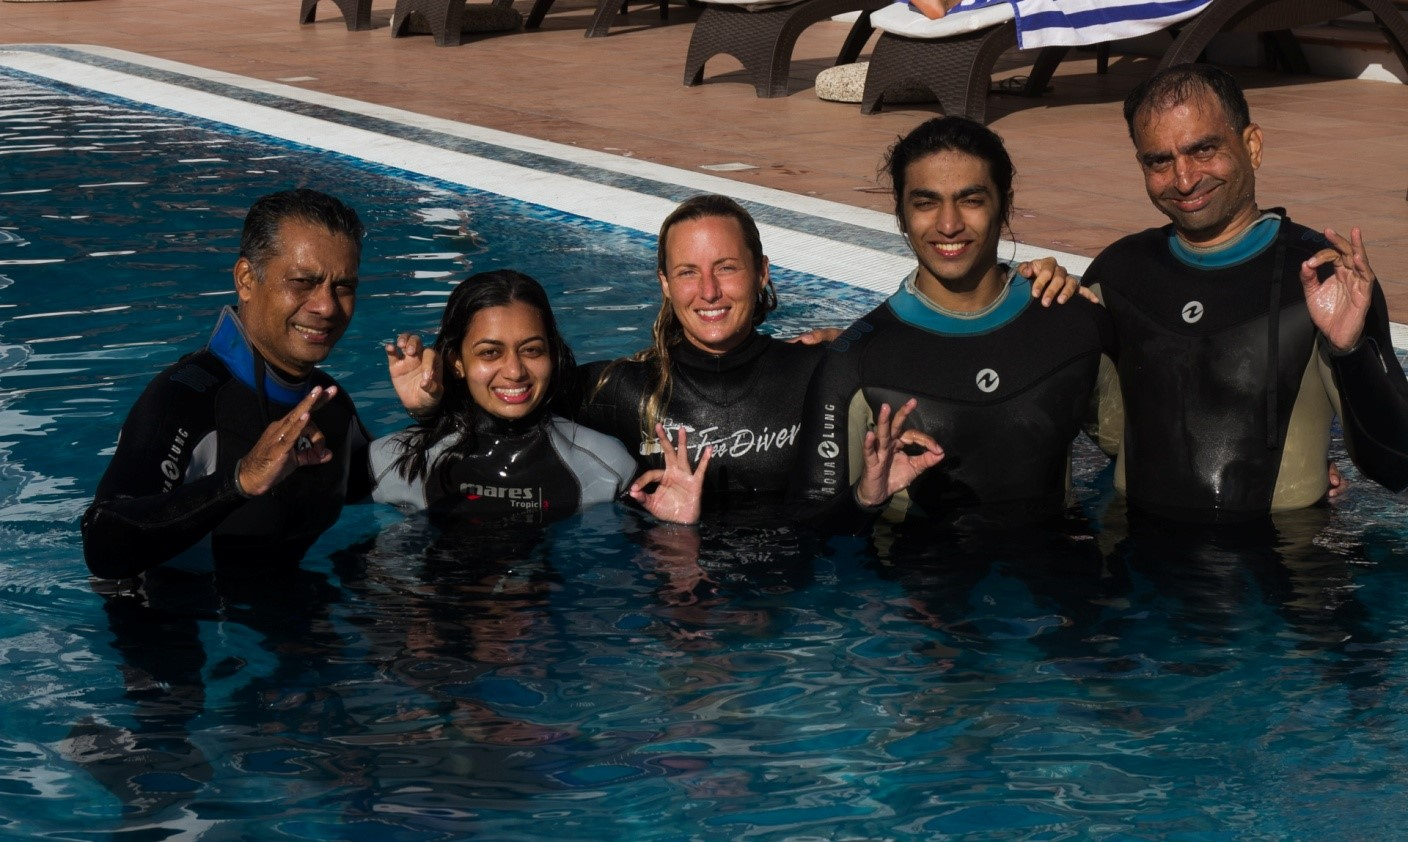 PADI Freediver Instructor